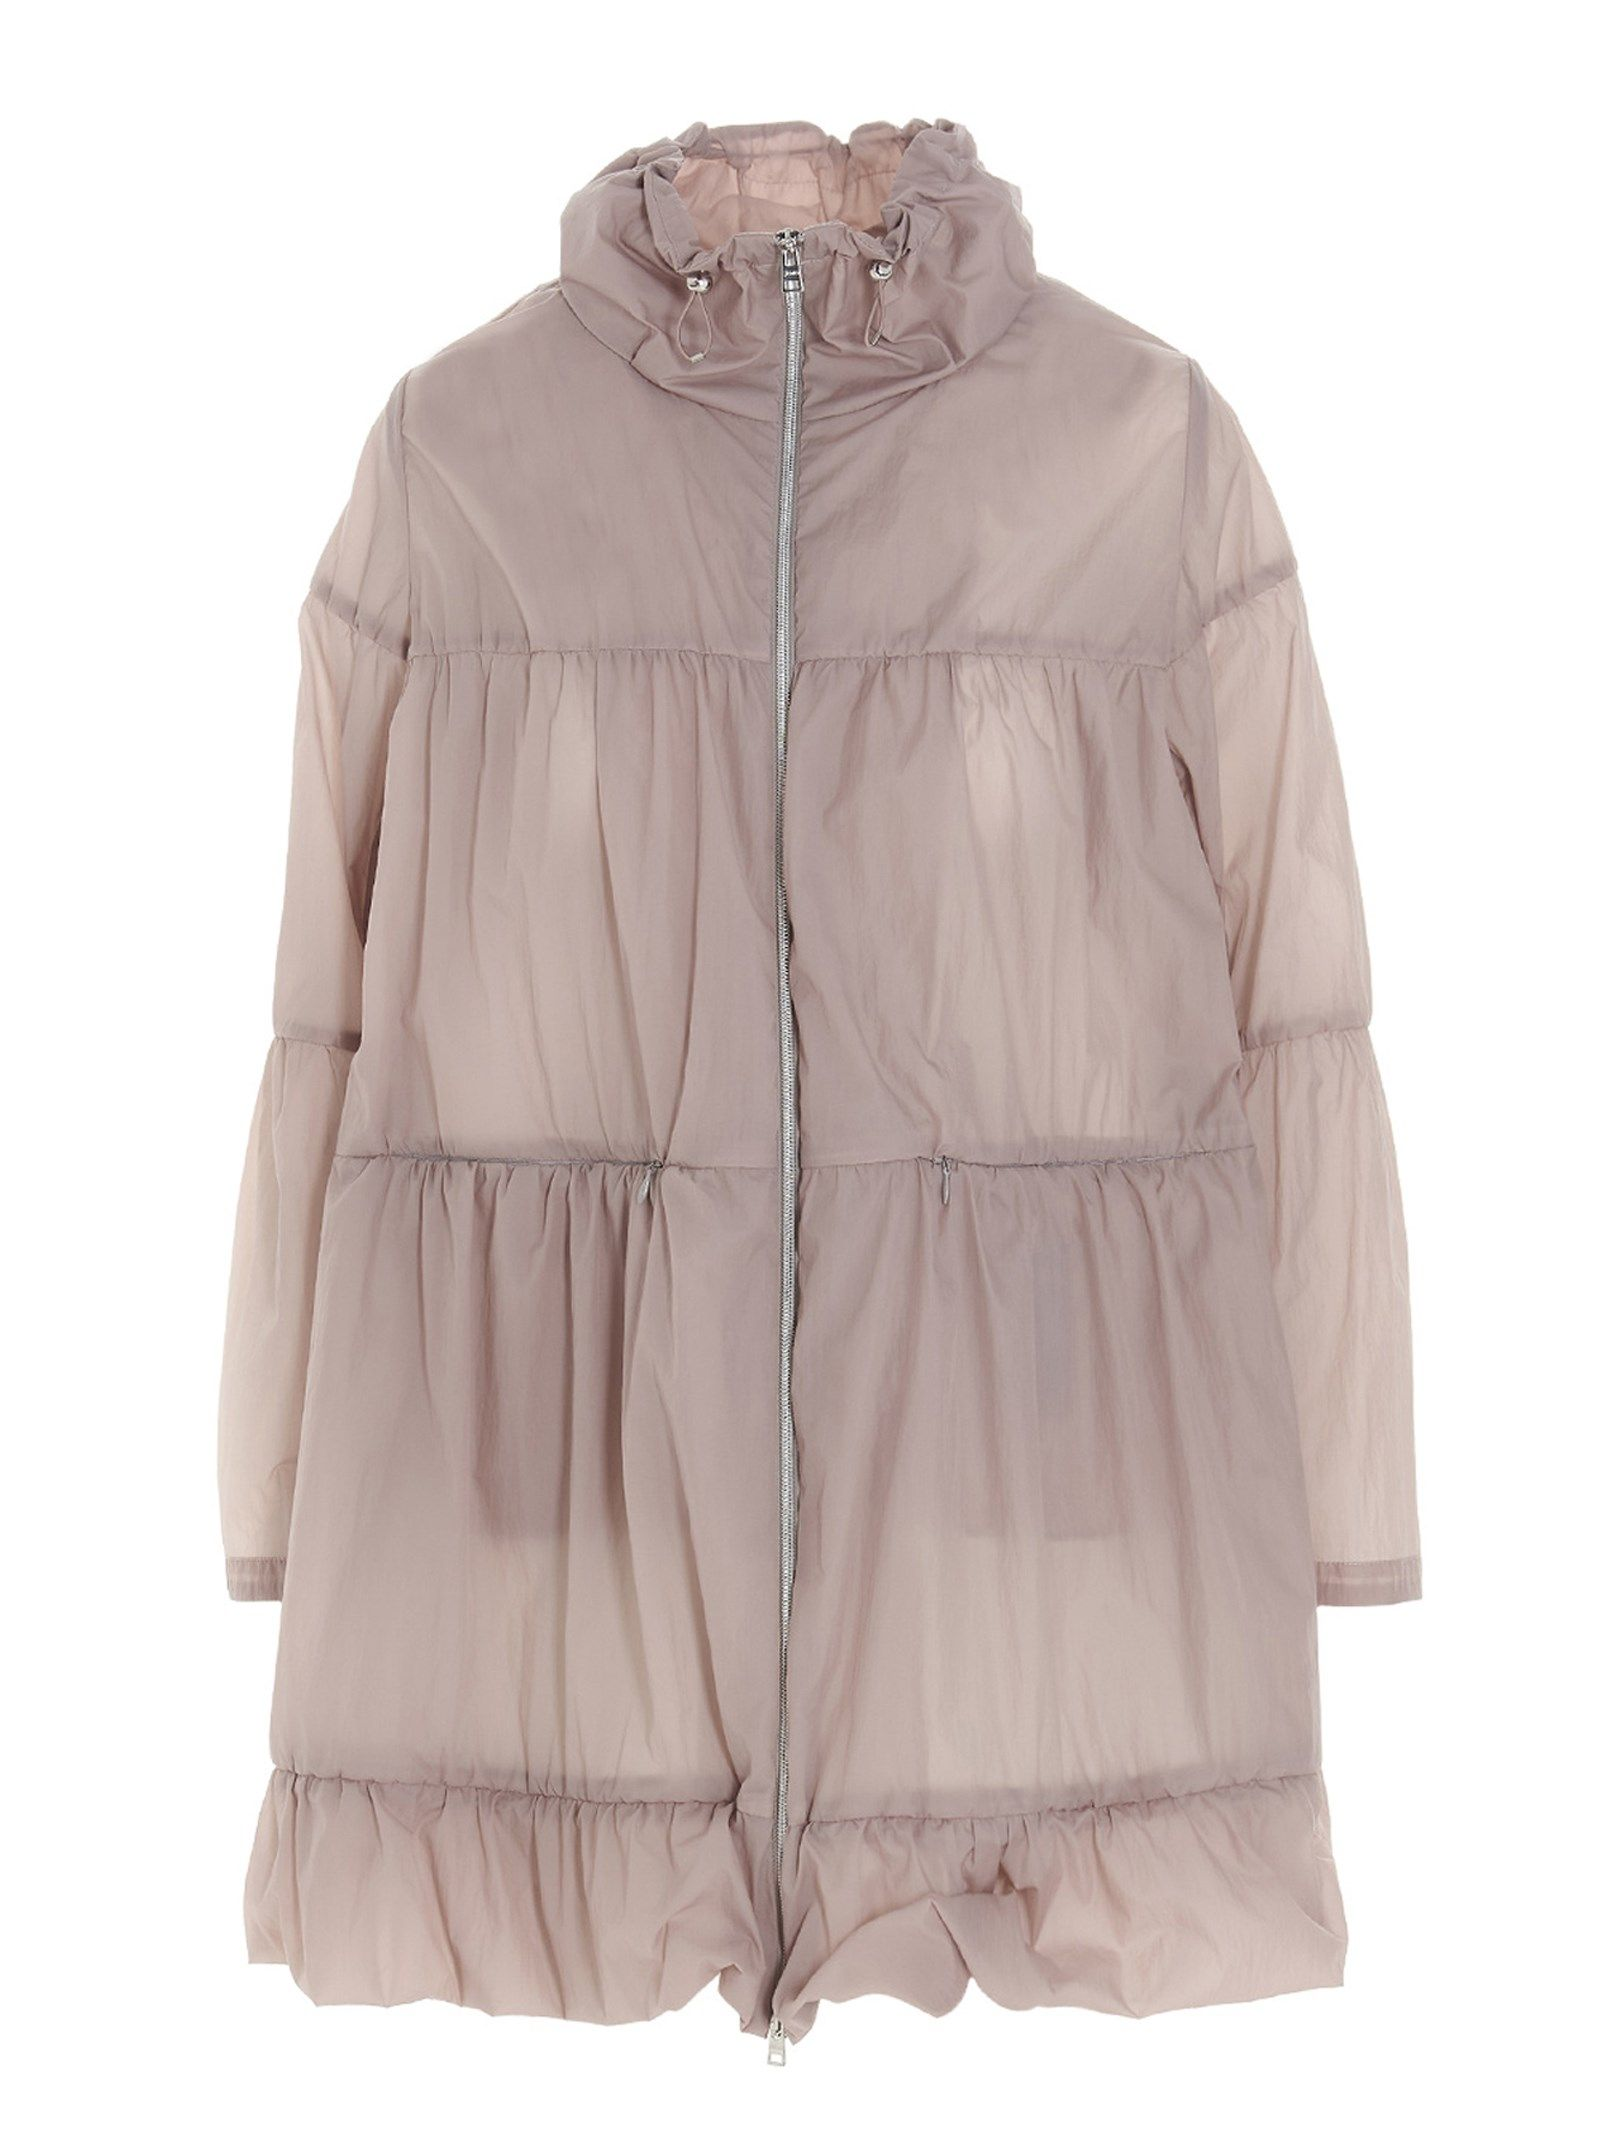 Herno HERNO WOMEN'S GC0305D123144030 PINK OTHER MATERIALS OUTERWEAR JACKET